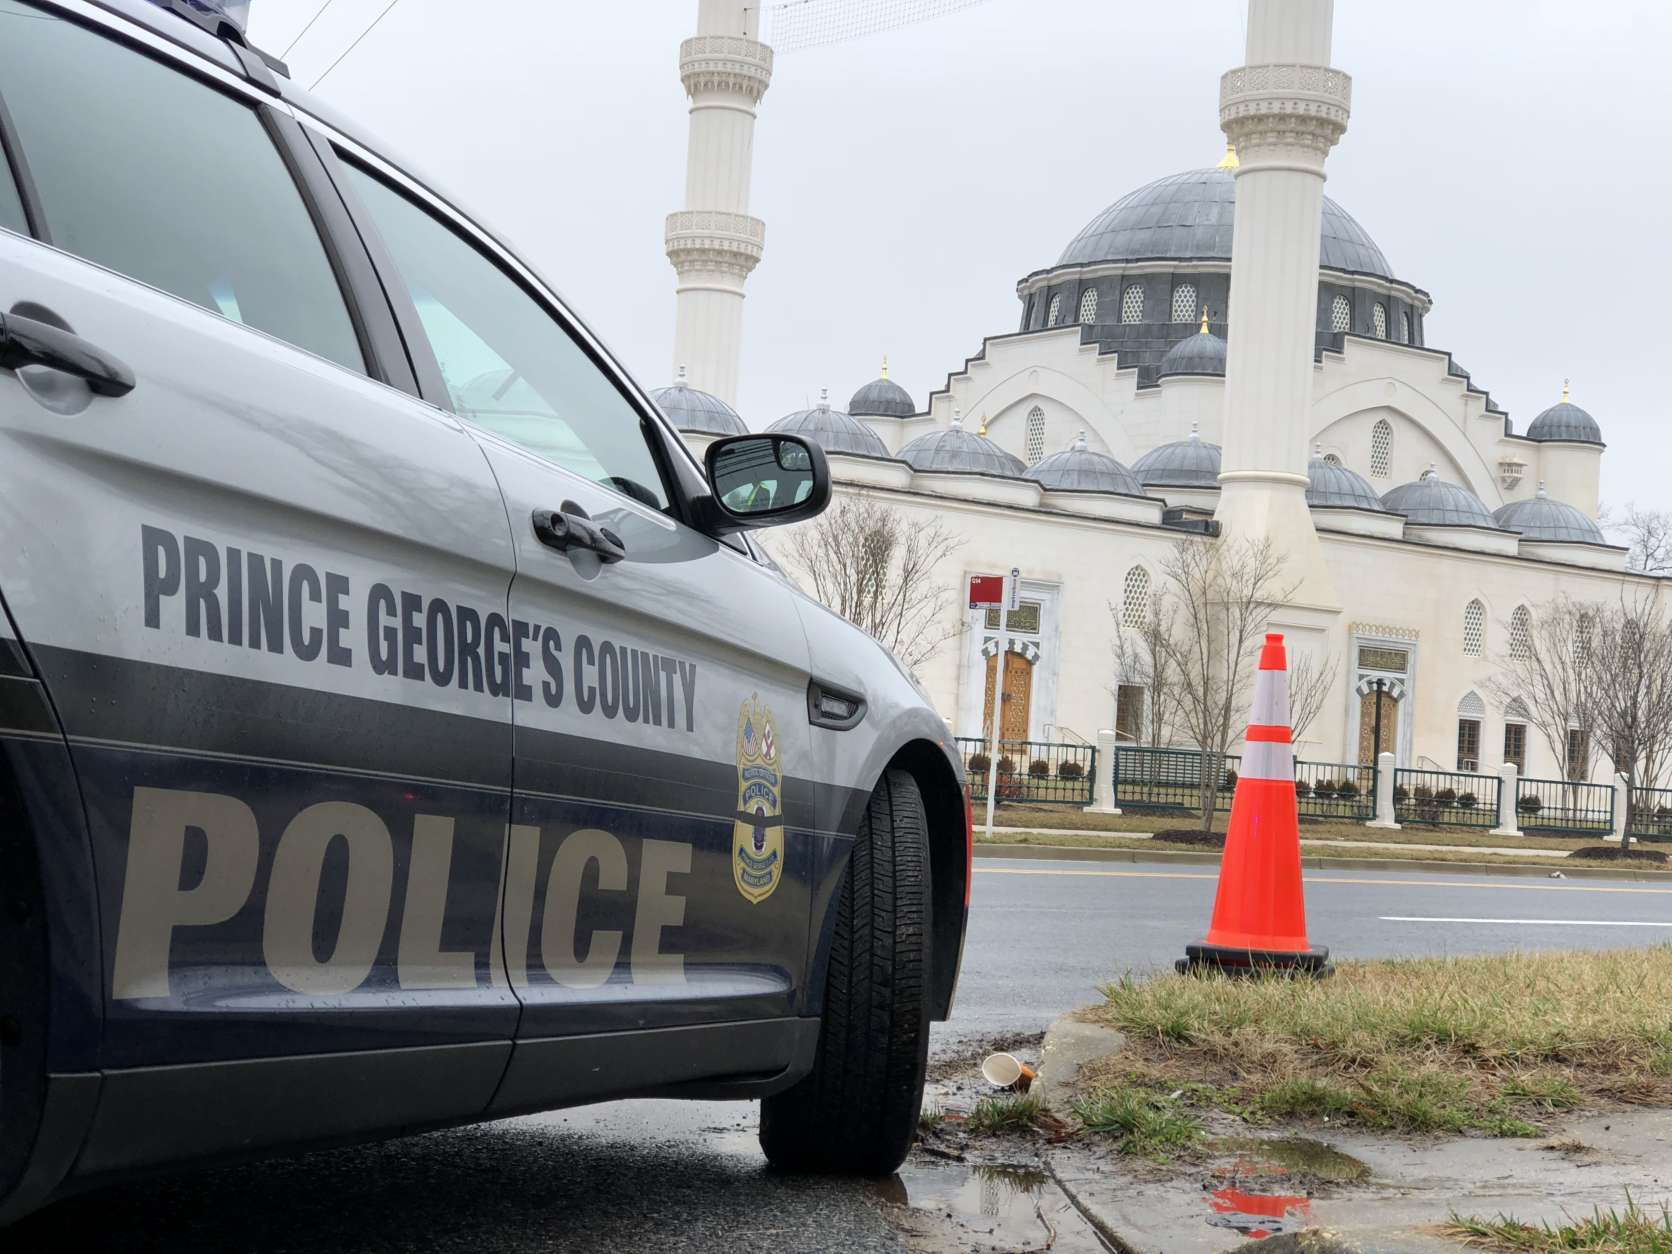 Services for Ramzziddin, a devout Muslim, were private. (WTOP/Kate Ryan)